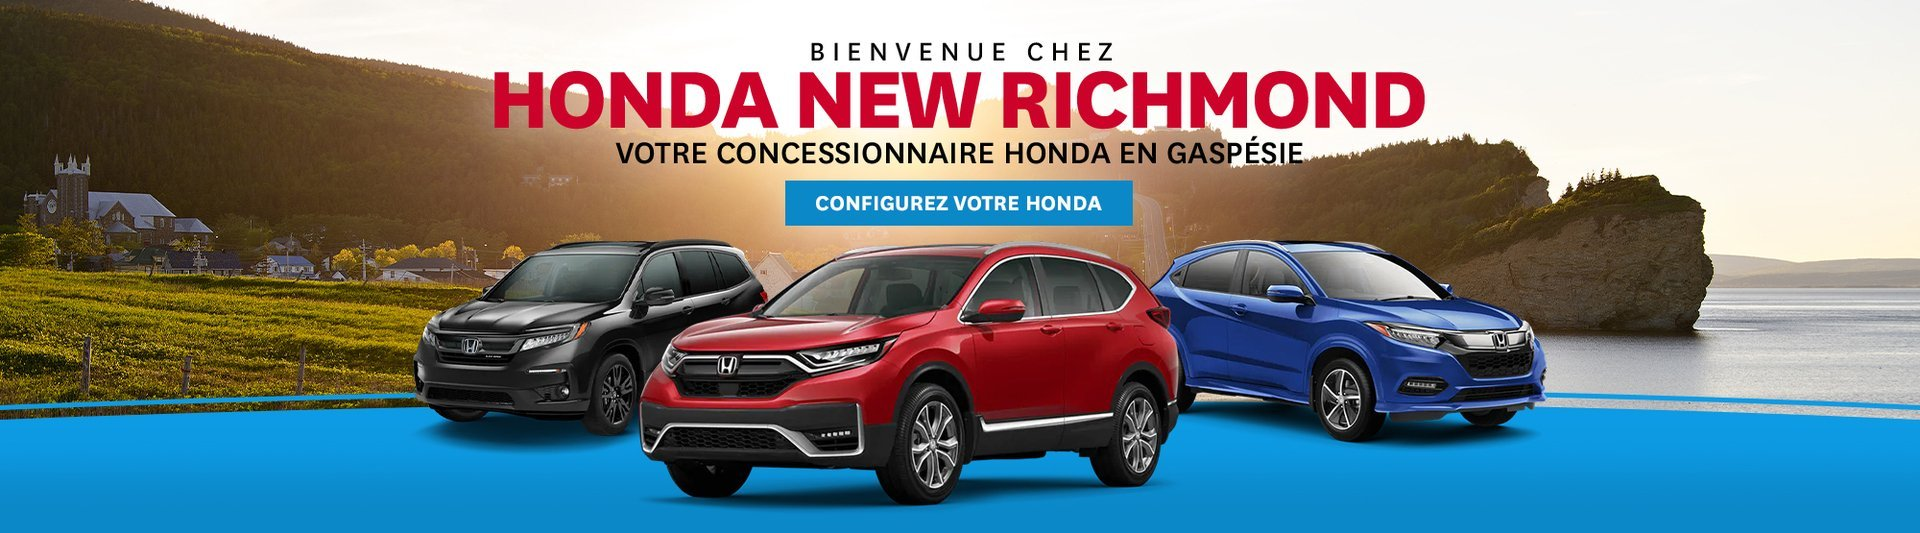 Honda New Richmond -banner1